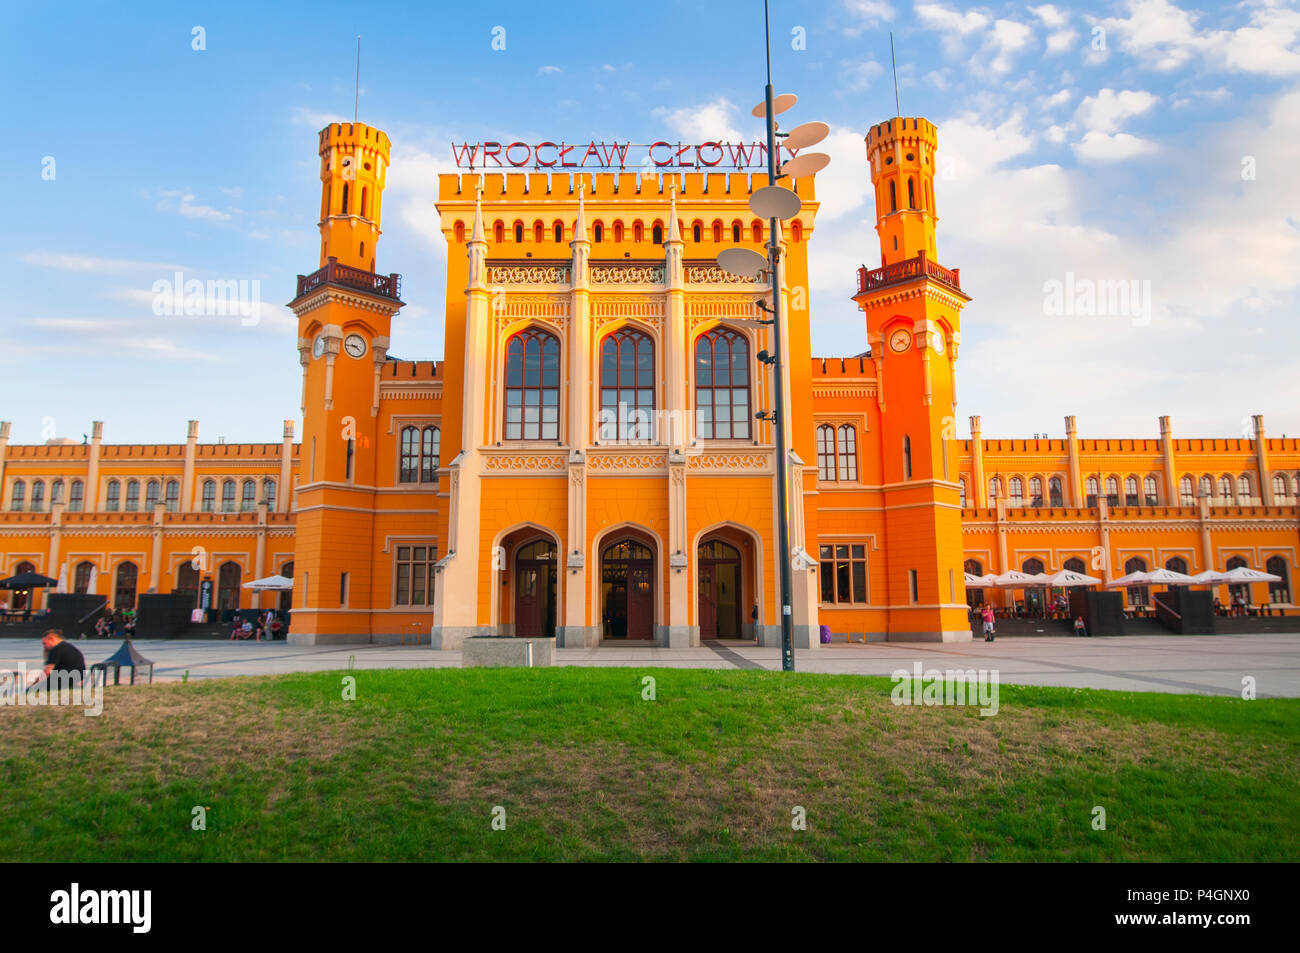 Building of the Main Railway Station (Wrocław Głowny) of Wroclaw, Built in the mid-19th century , until 1945 it was known a as Breslau Hauptbahnhof ('Breslau Main station'). - Stock Image